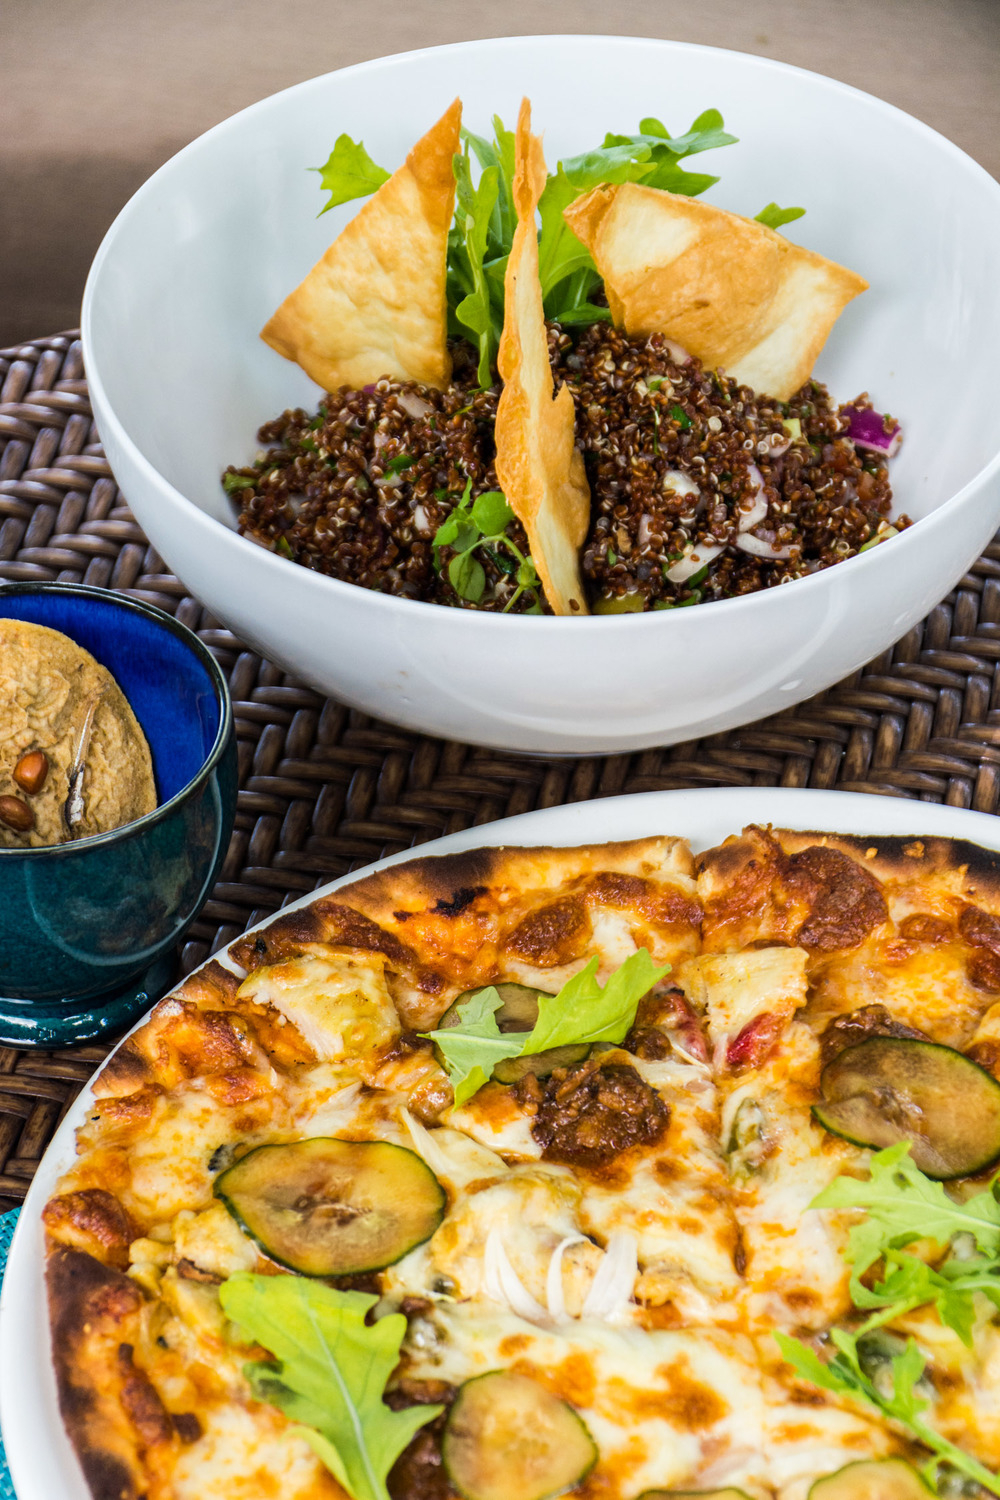 Our daily lunch - quinoa salad and pizza